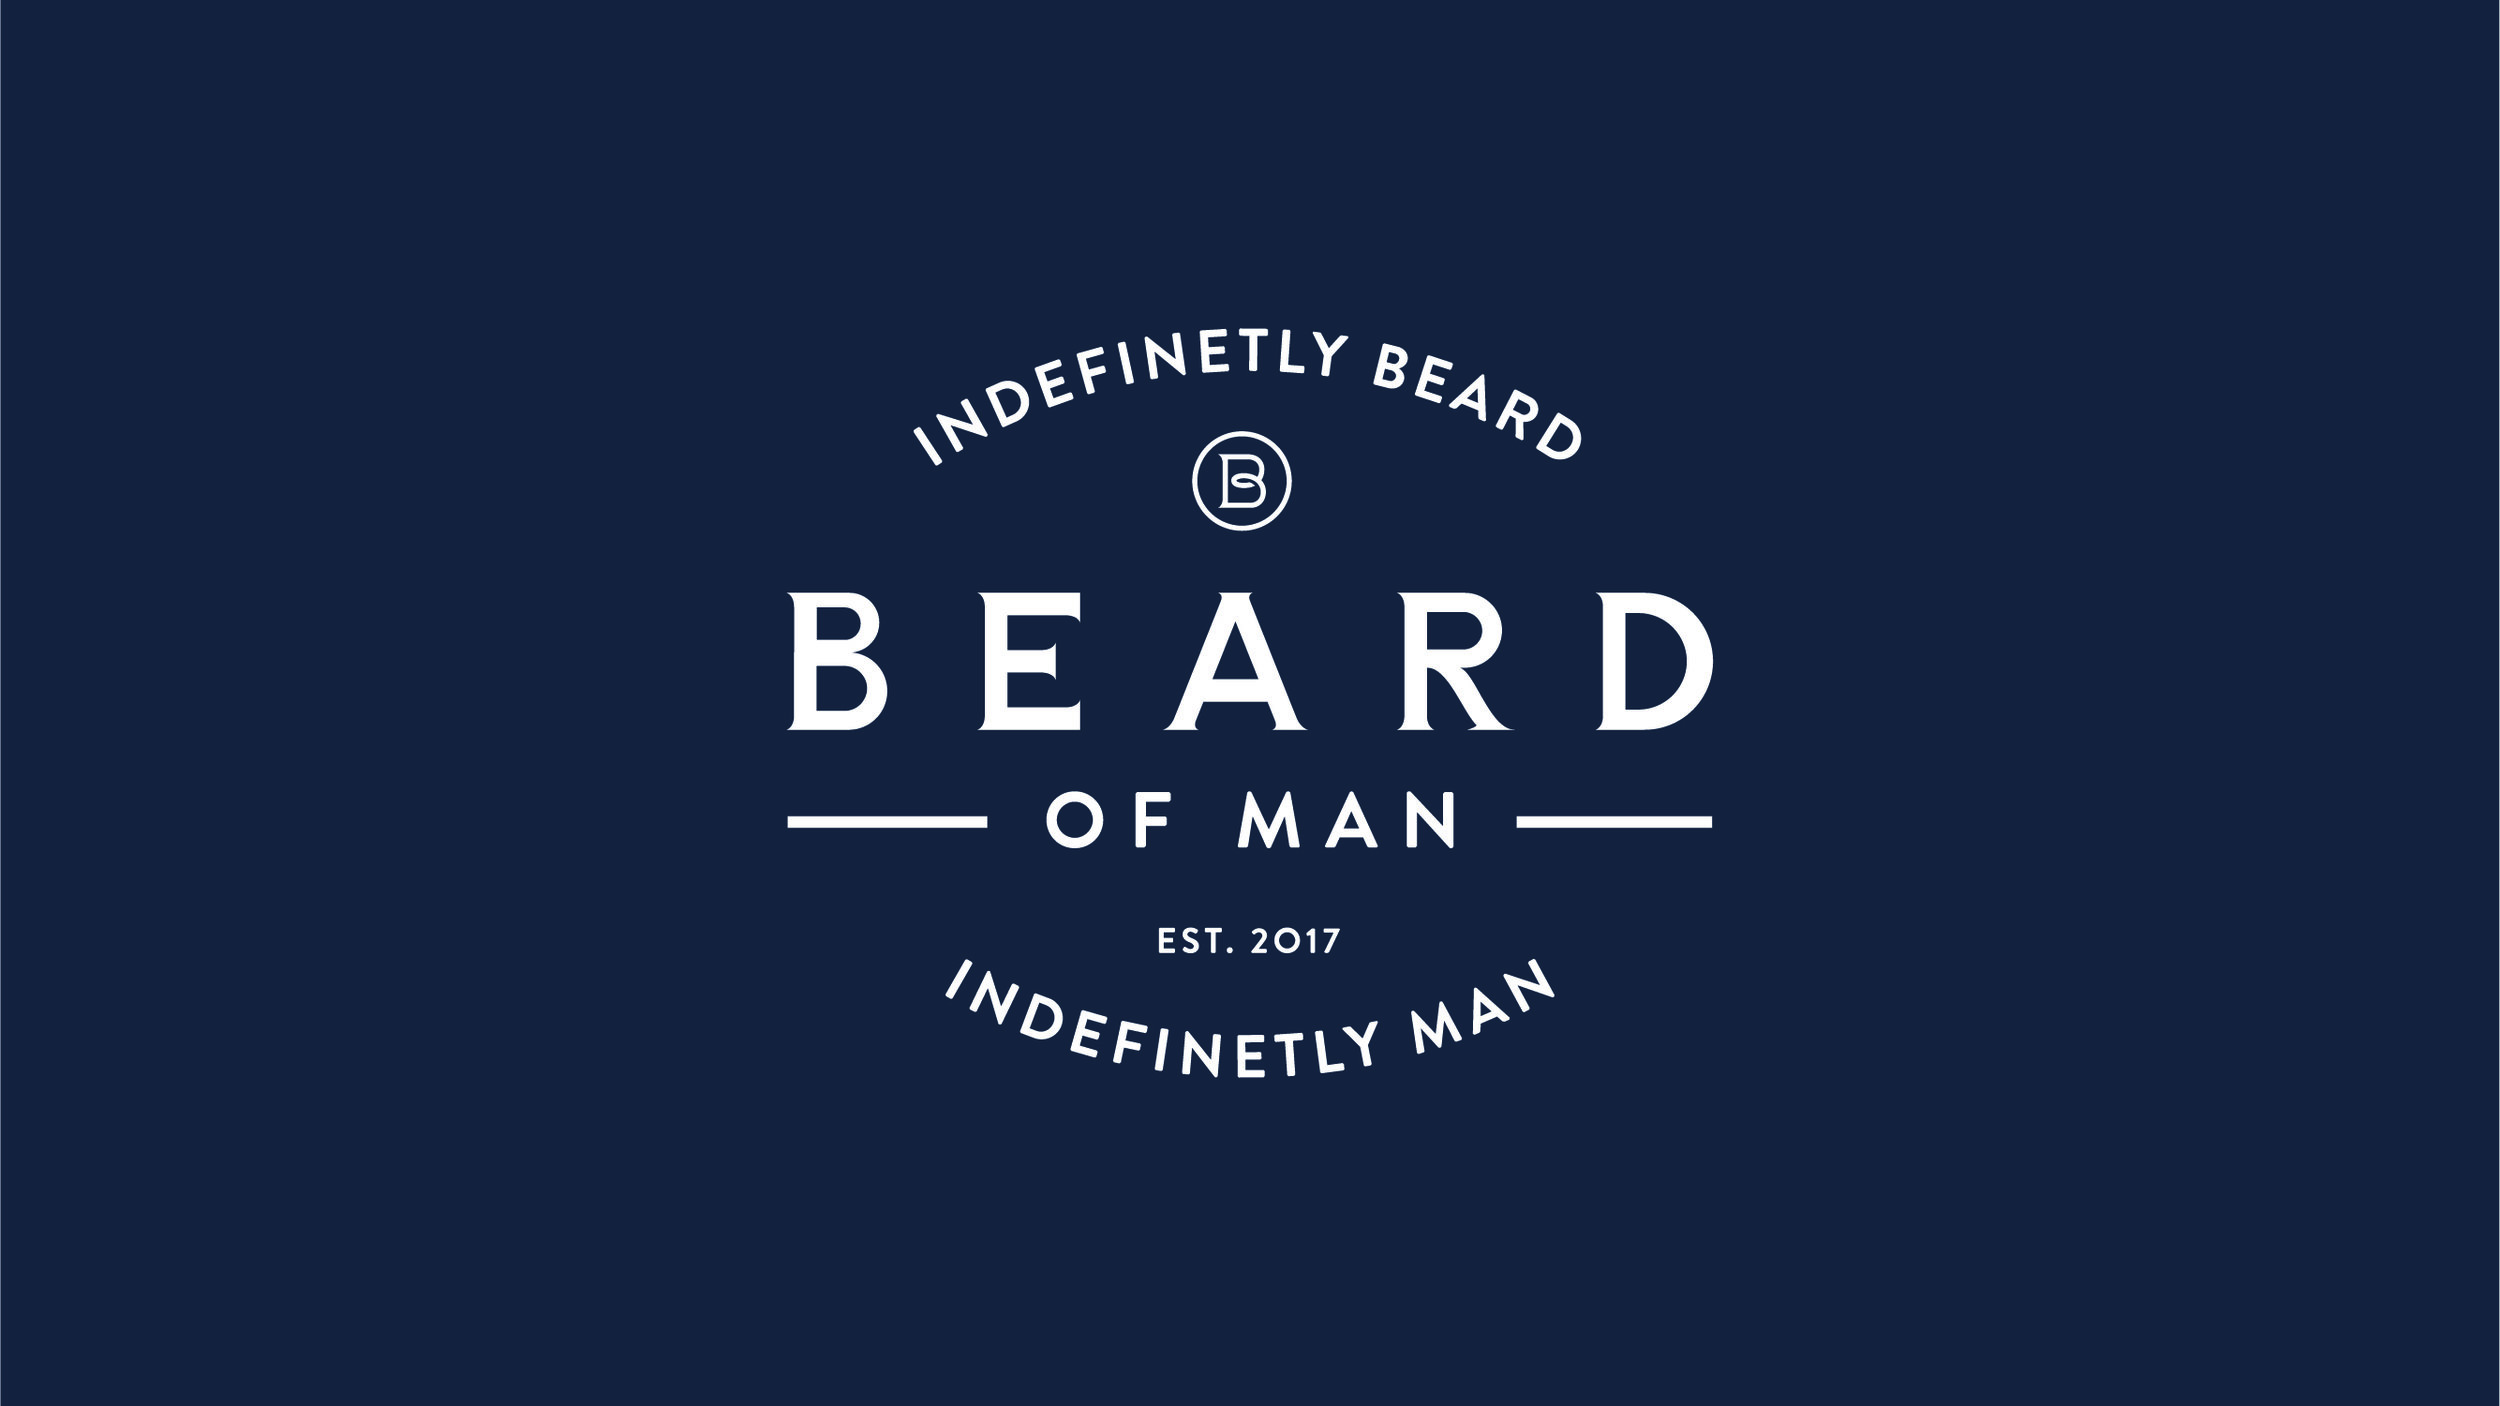 beard of manArtboard 1 copyFinal Preview.jpg